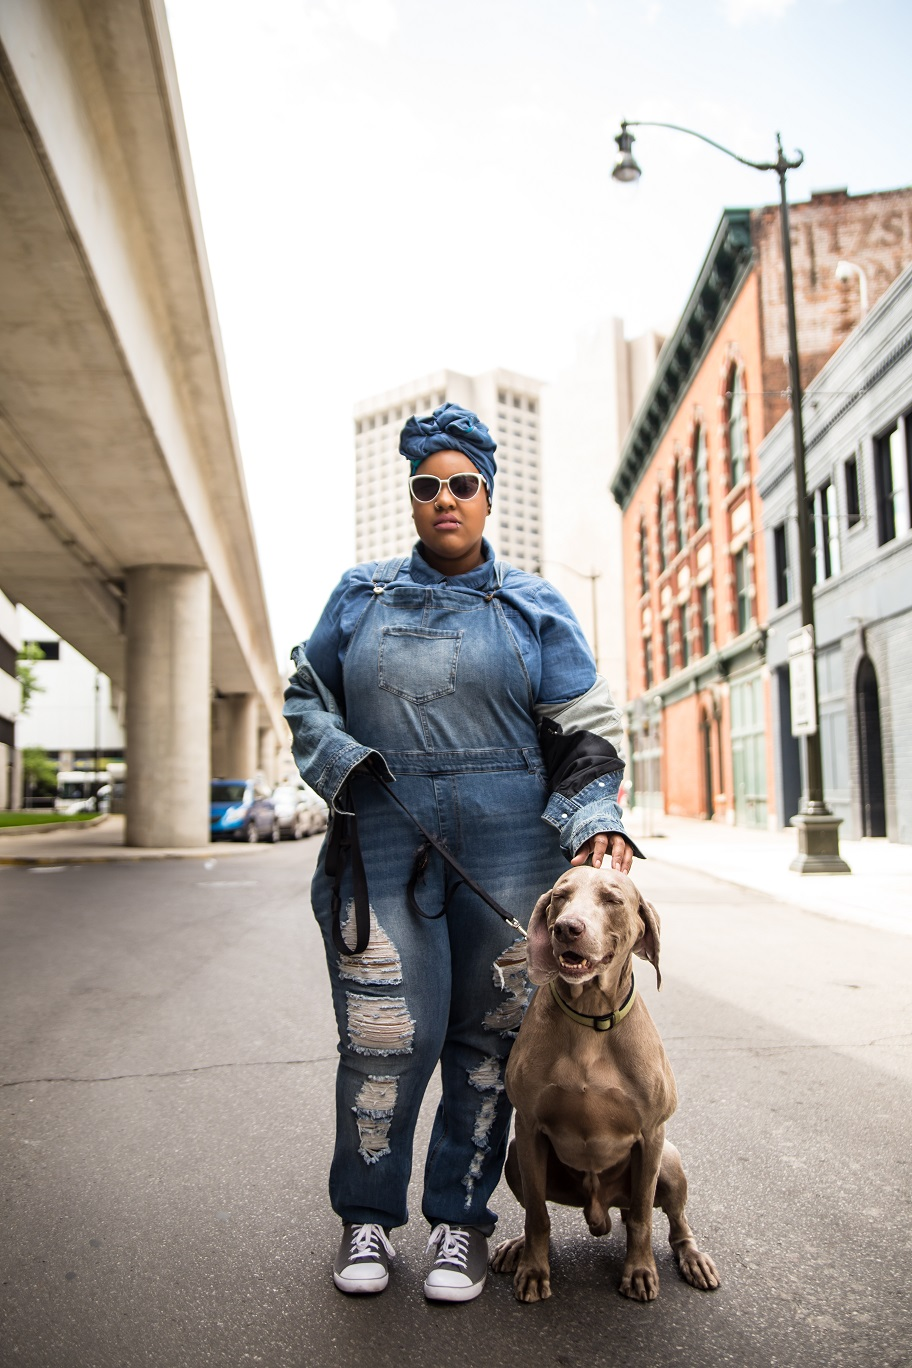 Leah-Vernon-Plus-Size-Model-Detroit-Blogger-Muslim-Girl-Body-positive-dogs-of-instagram